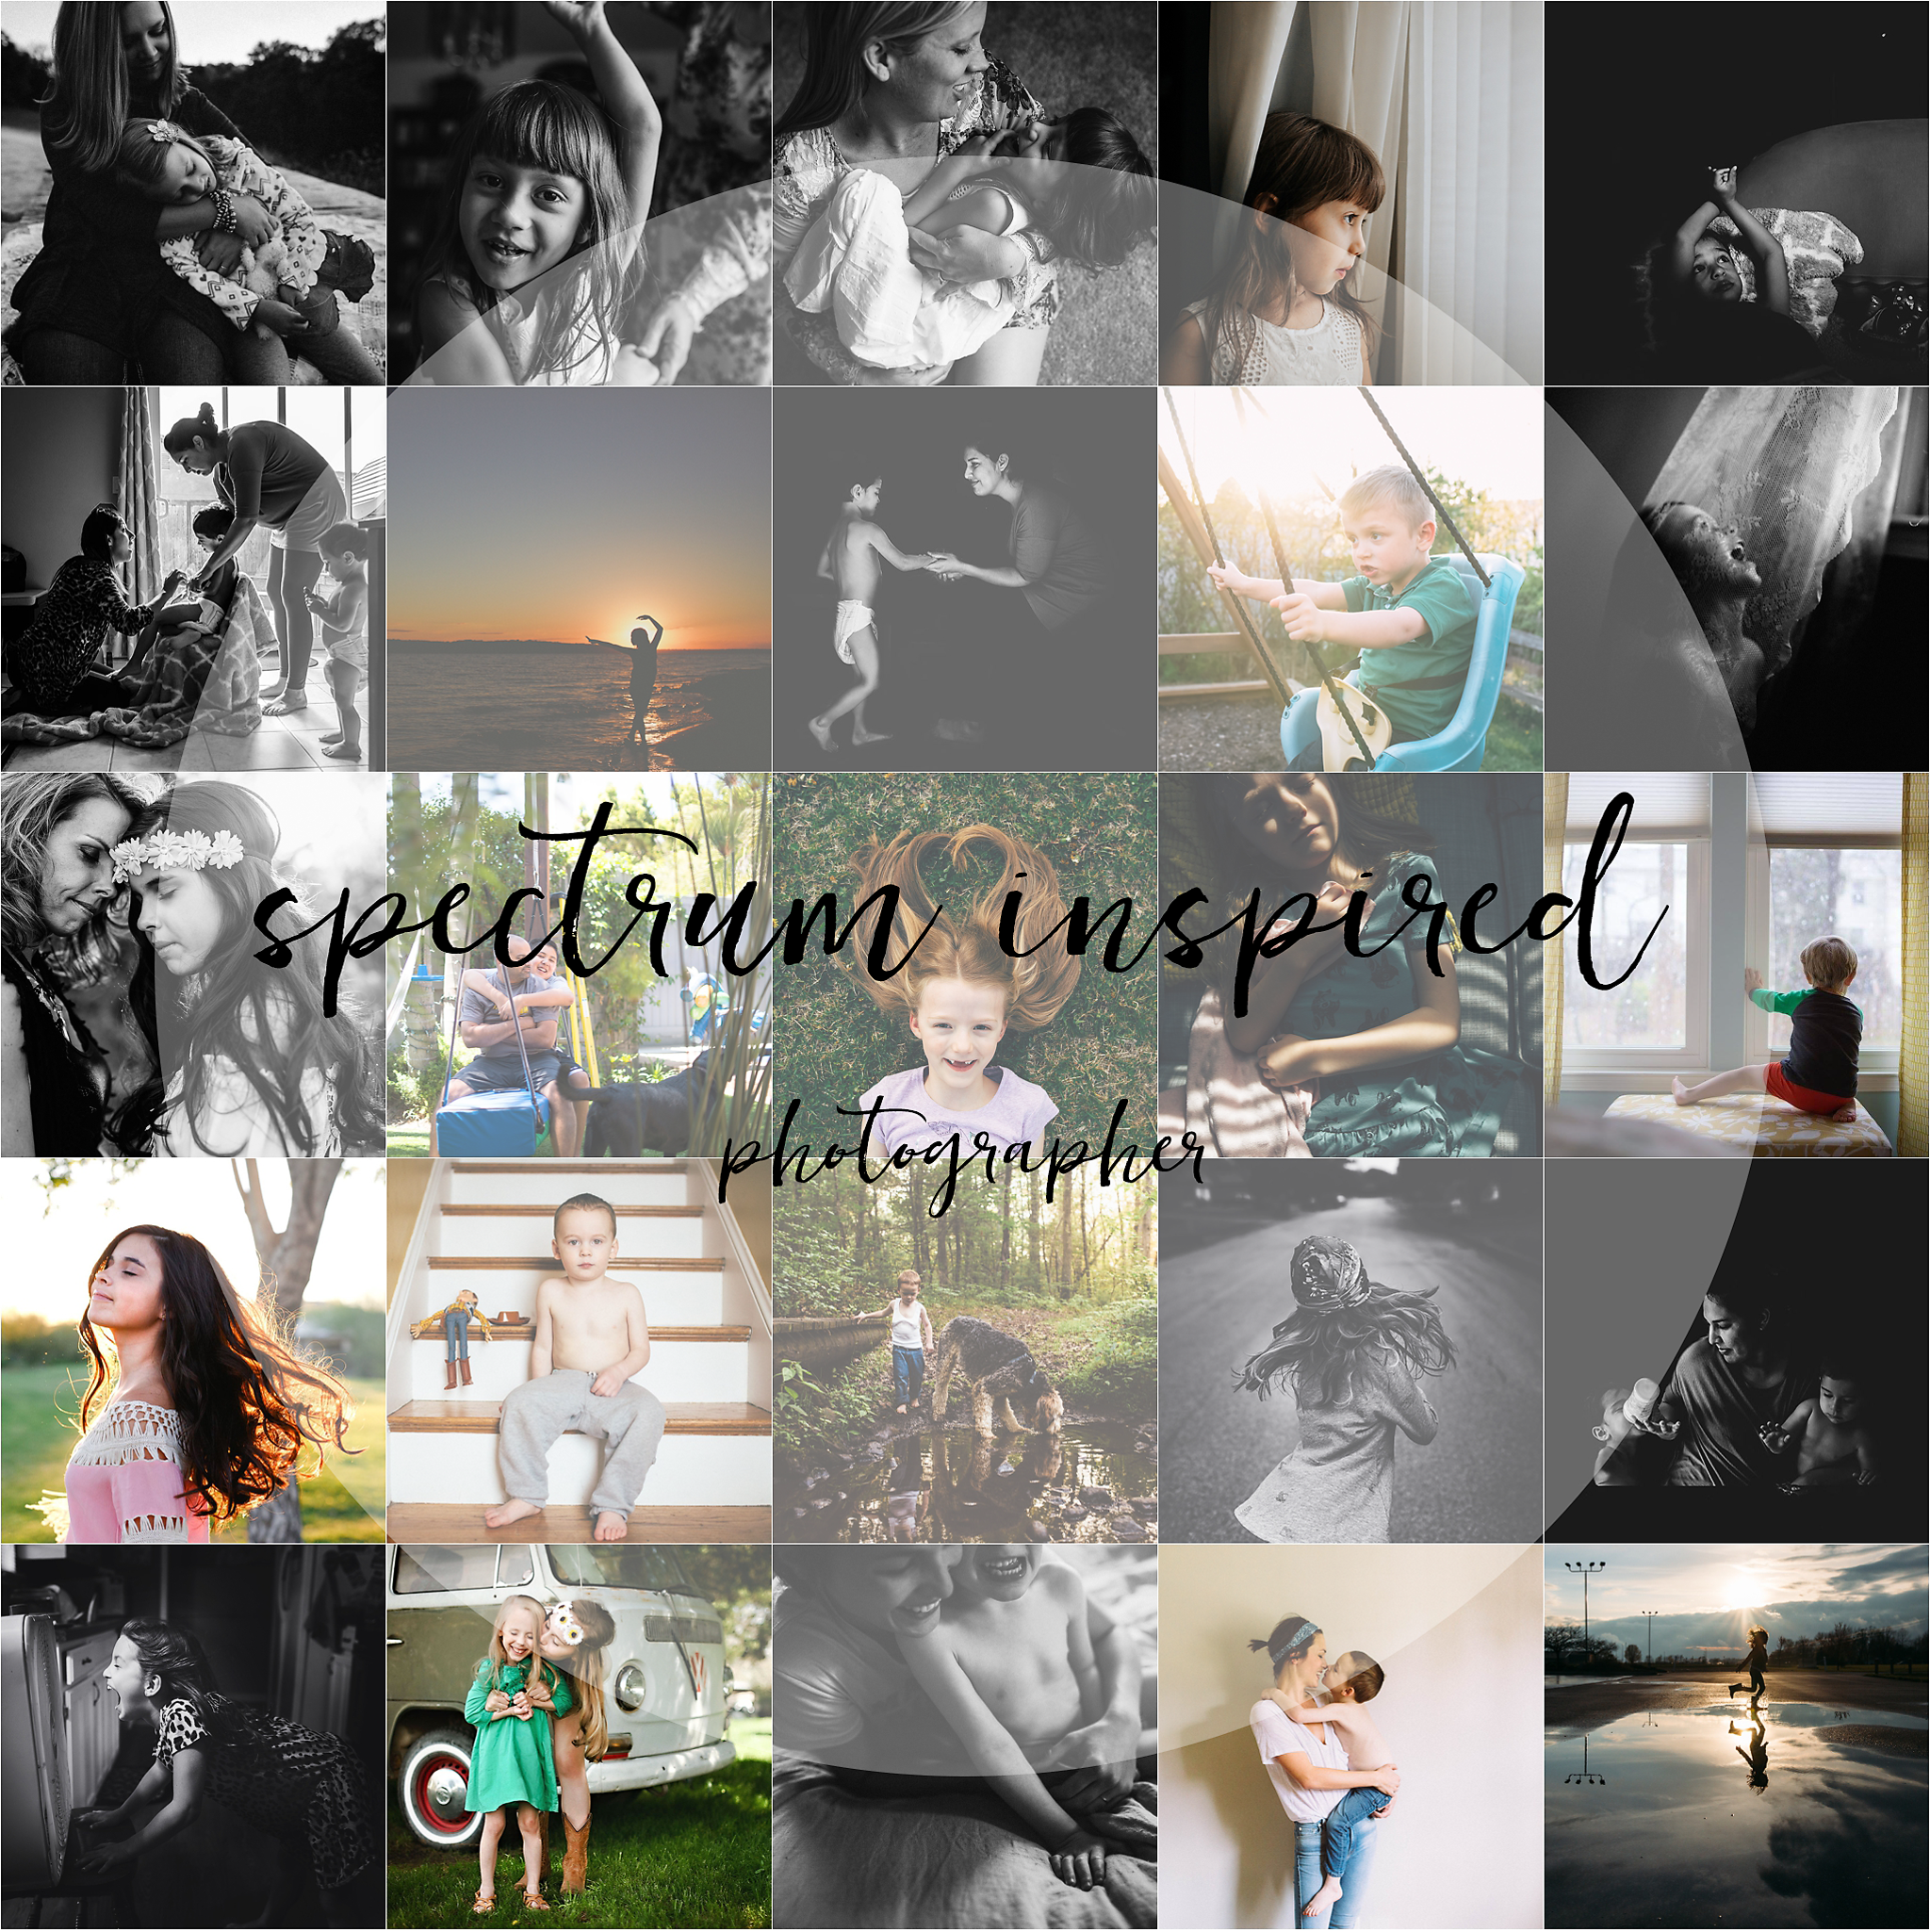 Photographer for Spectrum Inspired - If you have a child on the spectrum or know someone who does, PLEASE check out Spectrum Inspired and their amazing cause and apply for a session in your area!